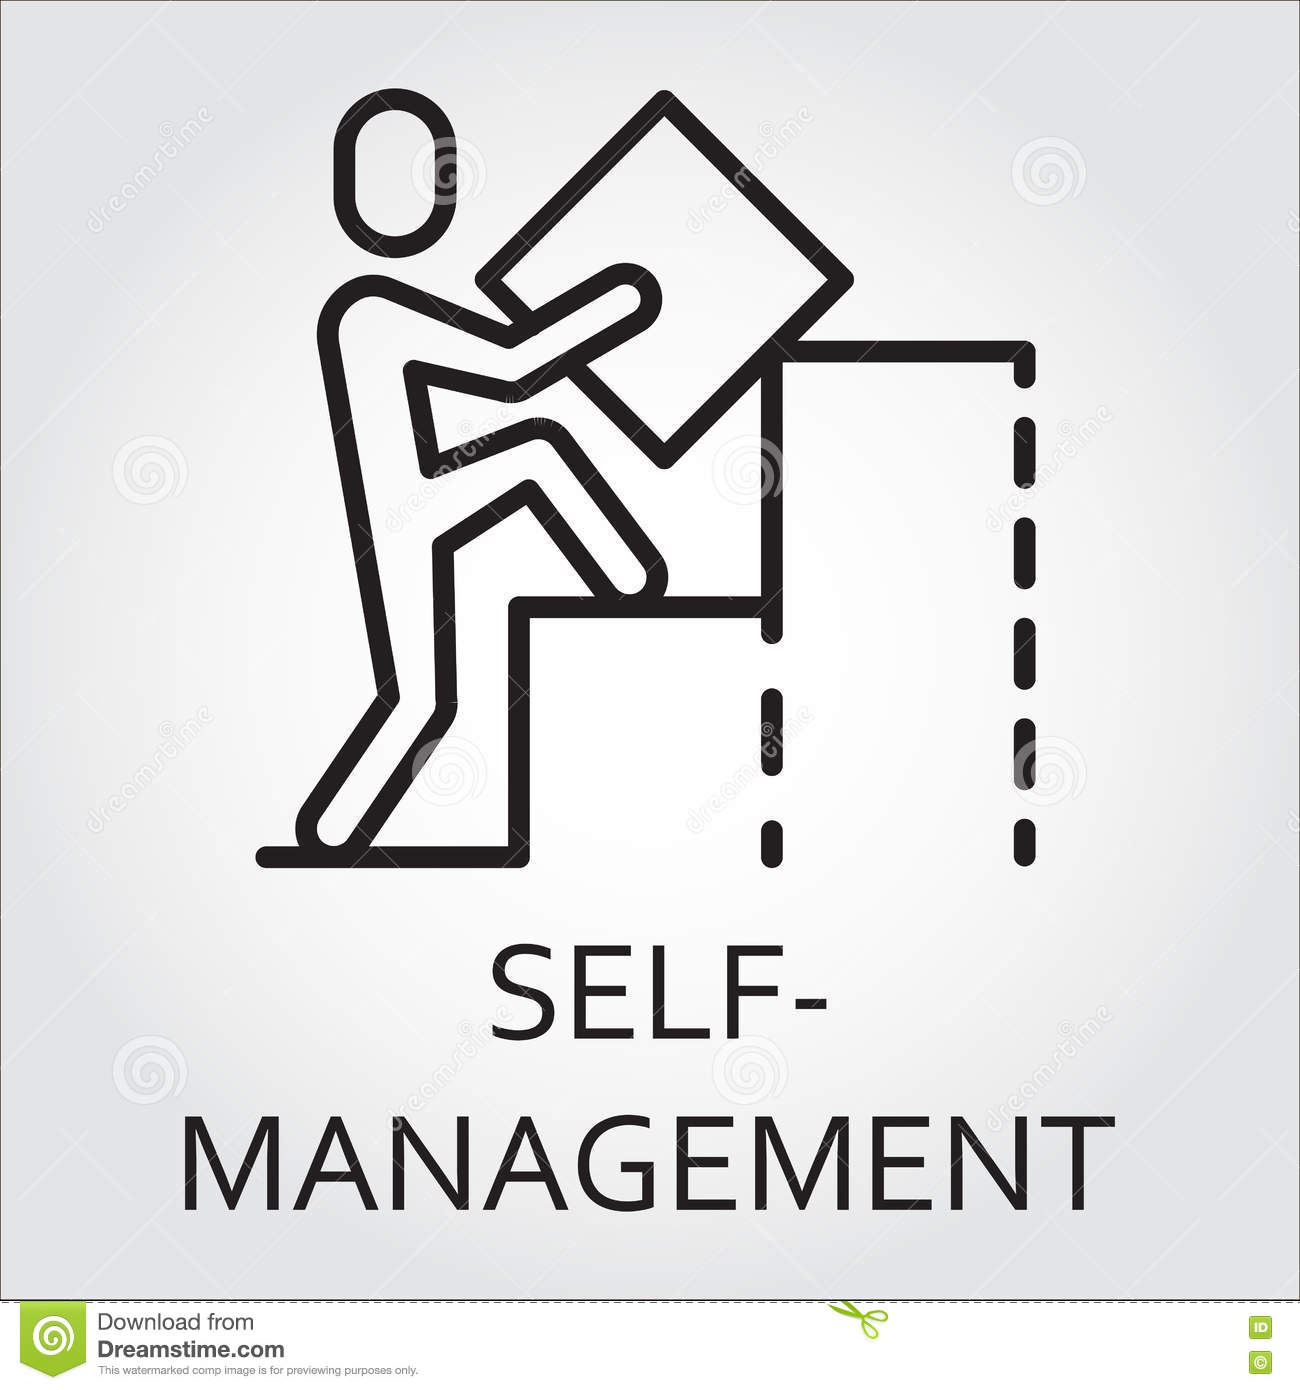 self management Self management training gives high levels of interpersonal awareness in employees self-management will increase leadership and communication skills.